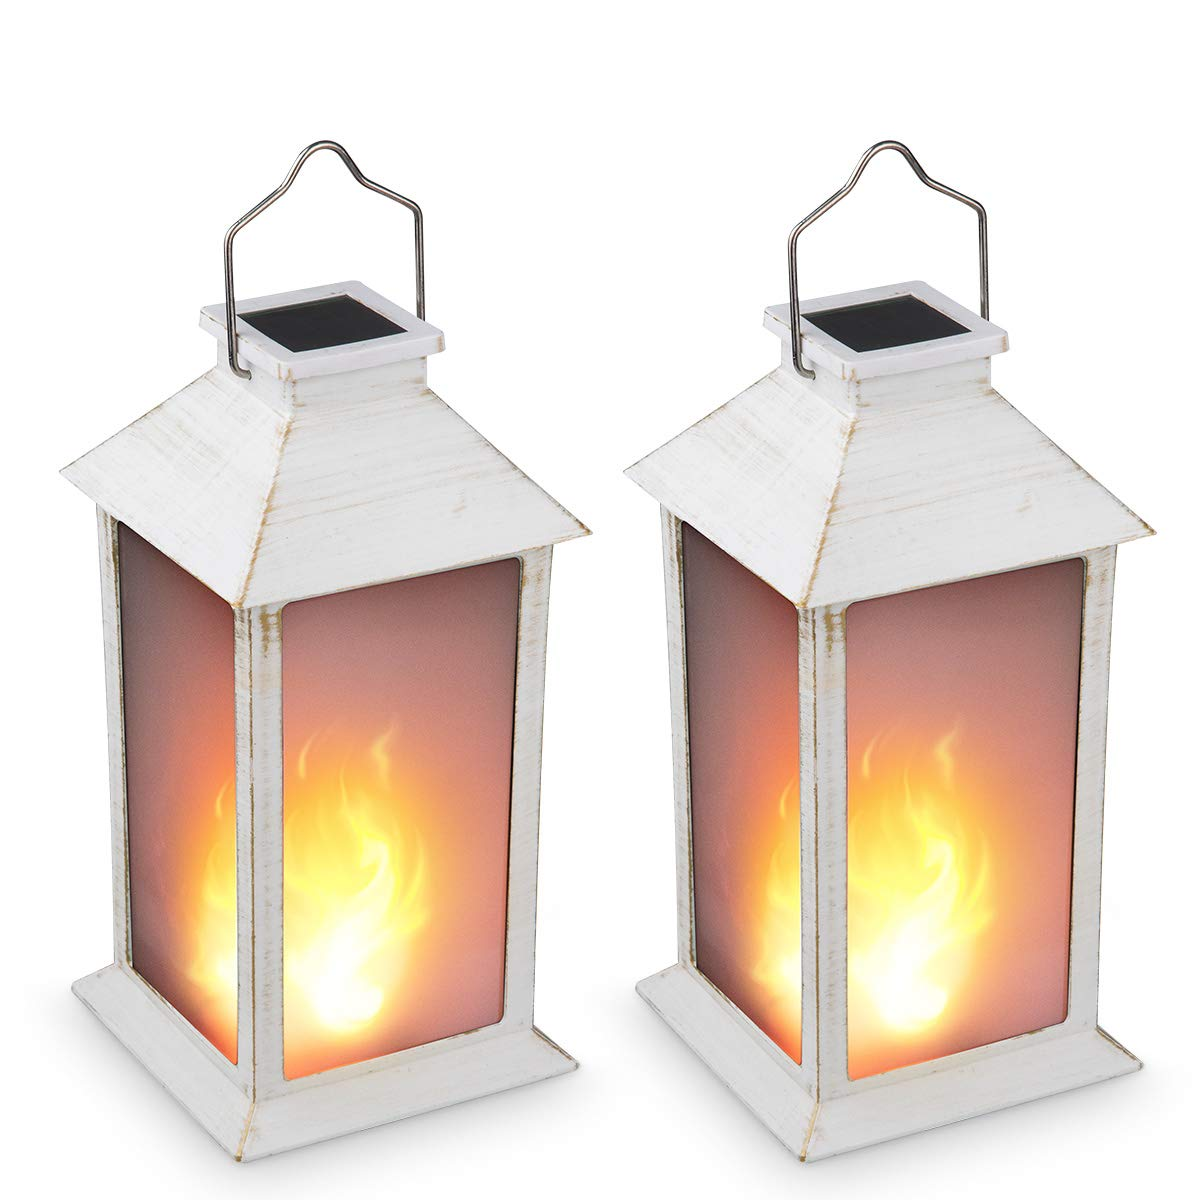 13'' Vintage Style Solar Powered Candle Lantern(Metallic Coating White,Plastic),Solar Garden Light with Vivid Fire Effect,Outdoor Solar Hanging Lantern,Decorative Candle Lanterns ZKEE (Set of 2)